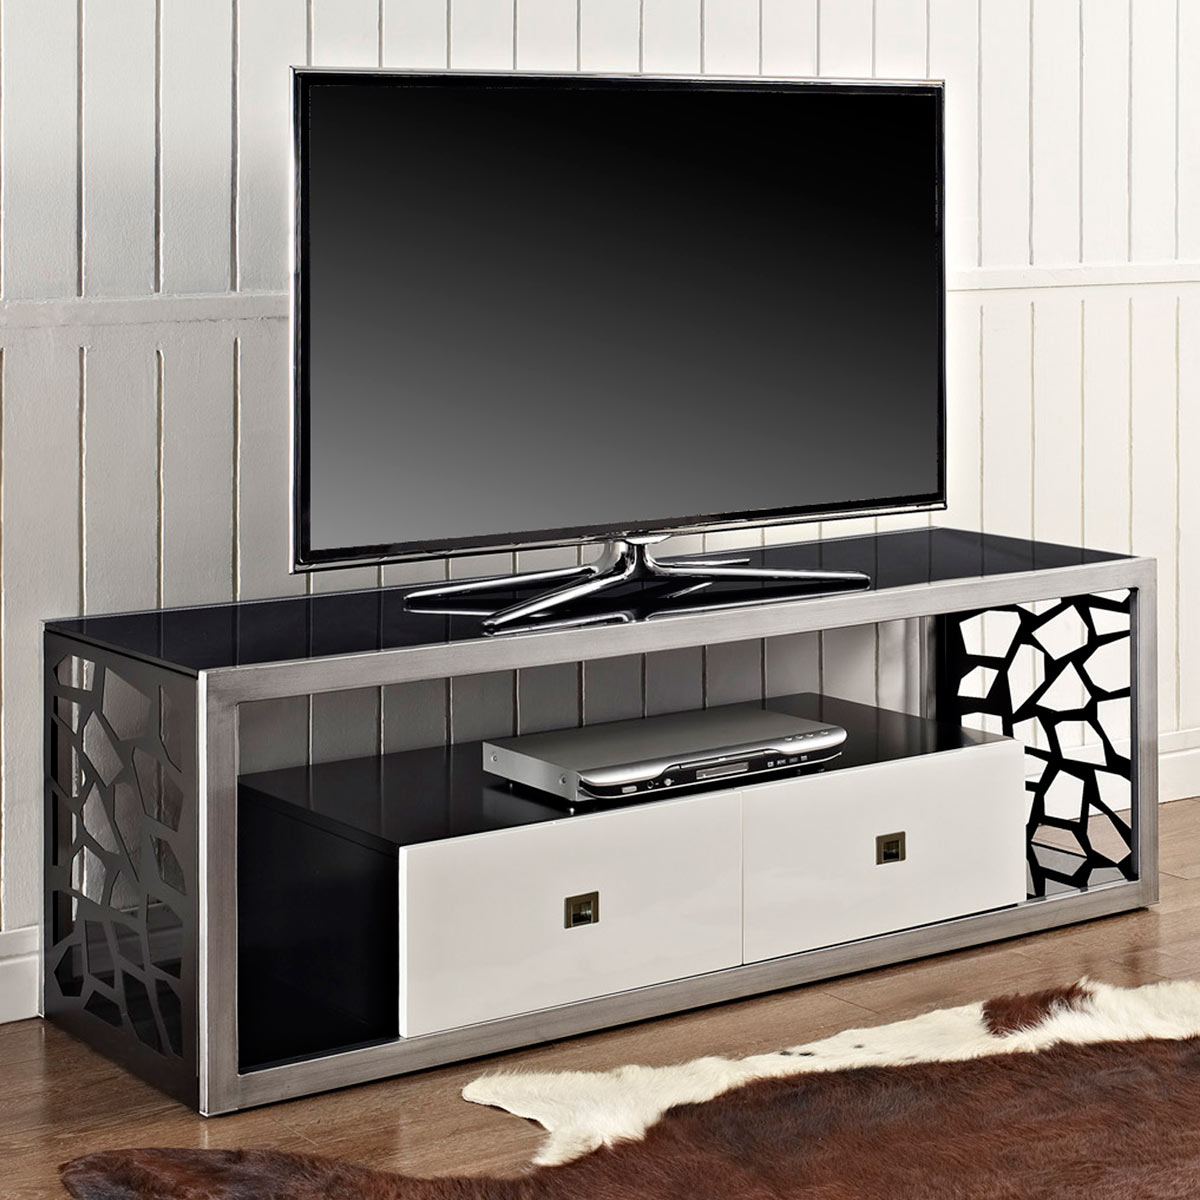 Modern Mosaic 60 Inch Steel Tv Stand Brushed Silver 2 Drawers Wal